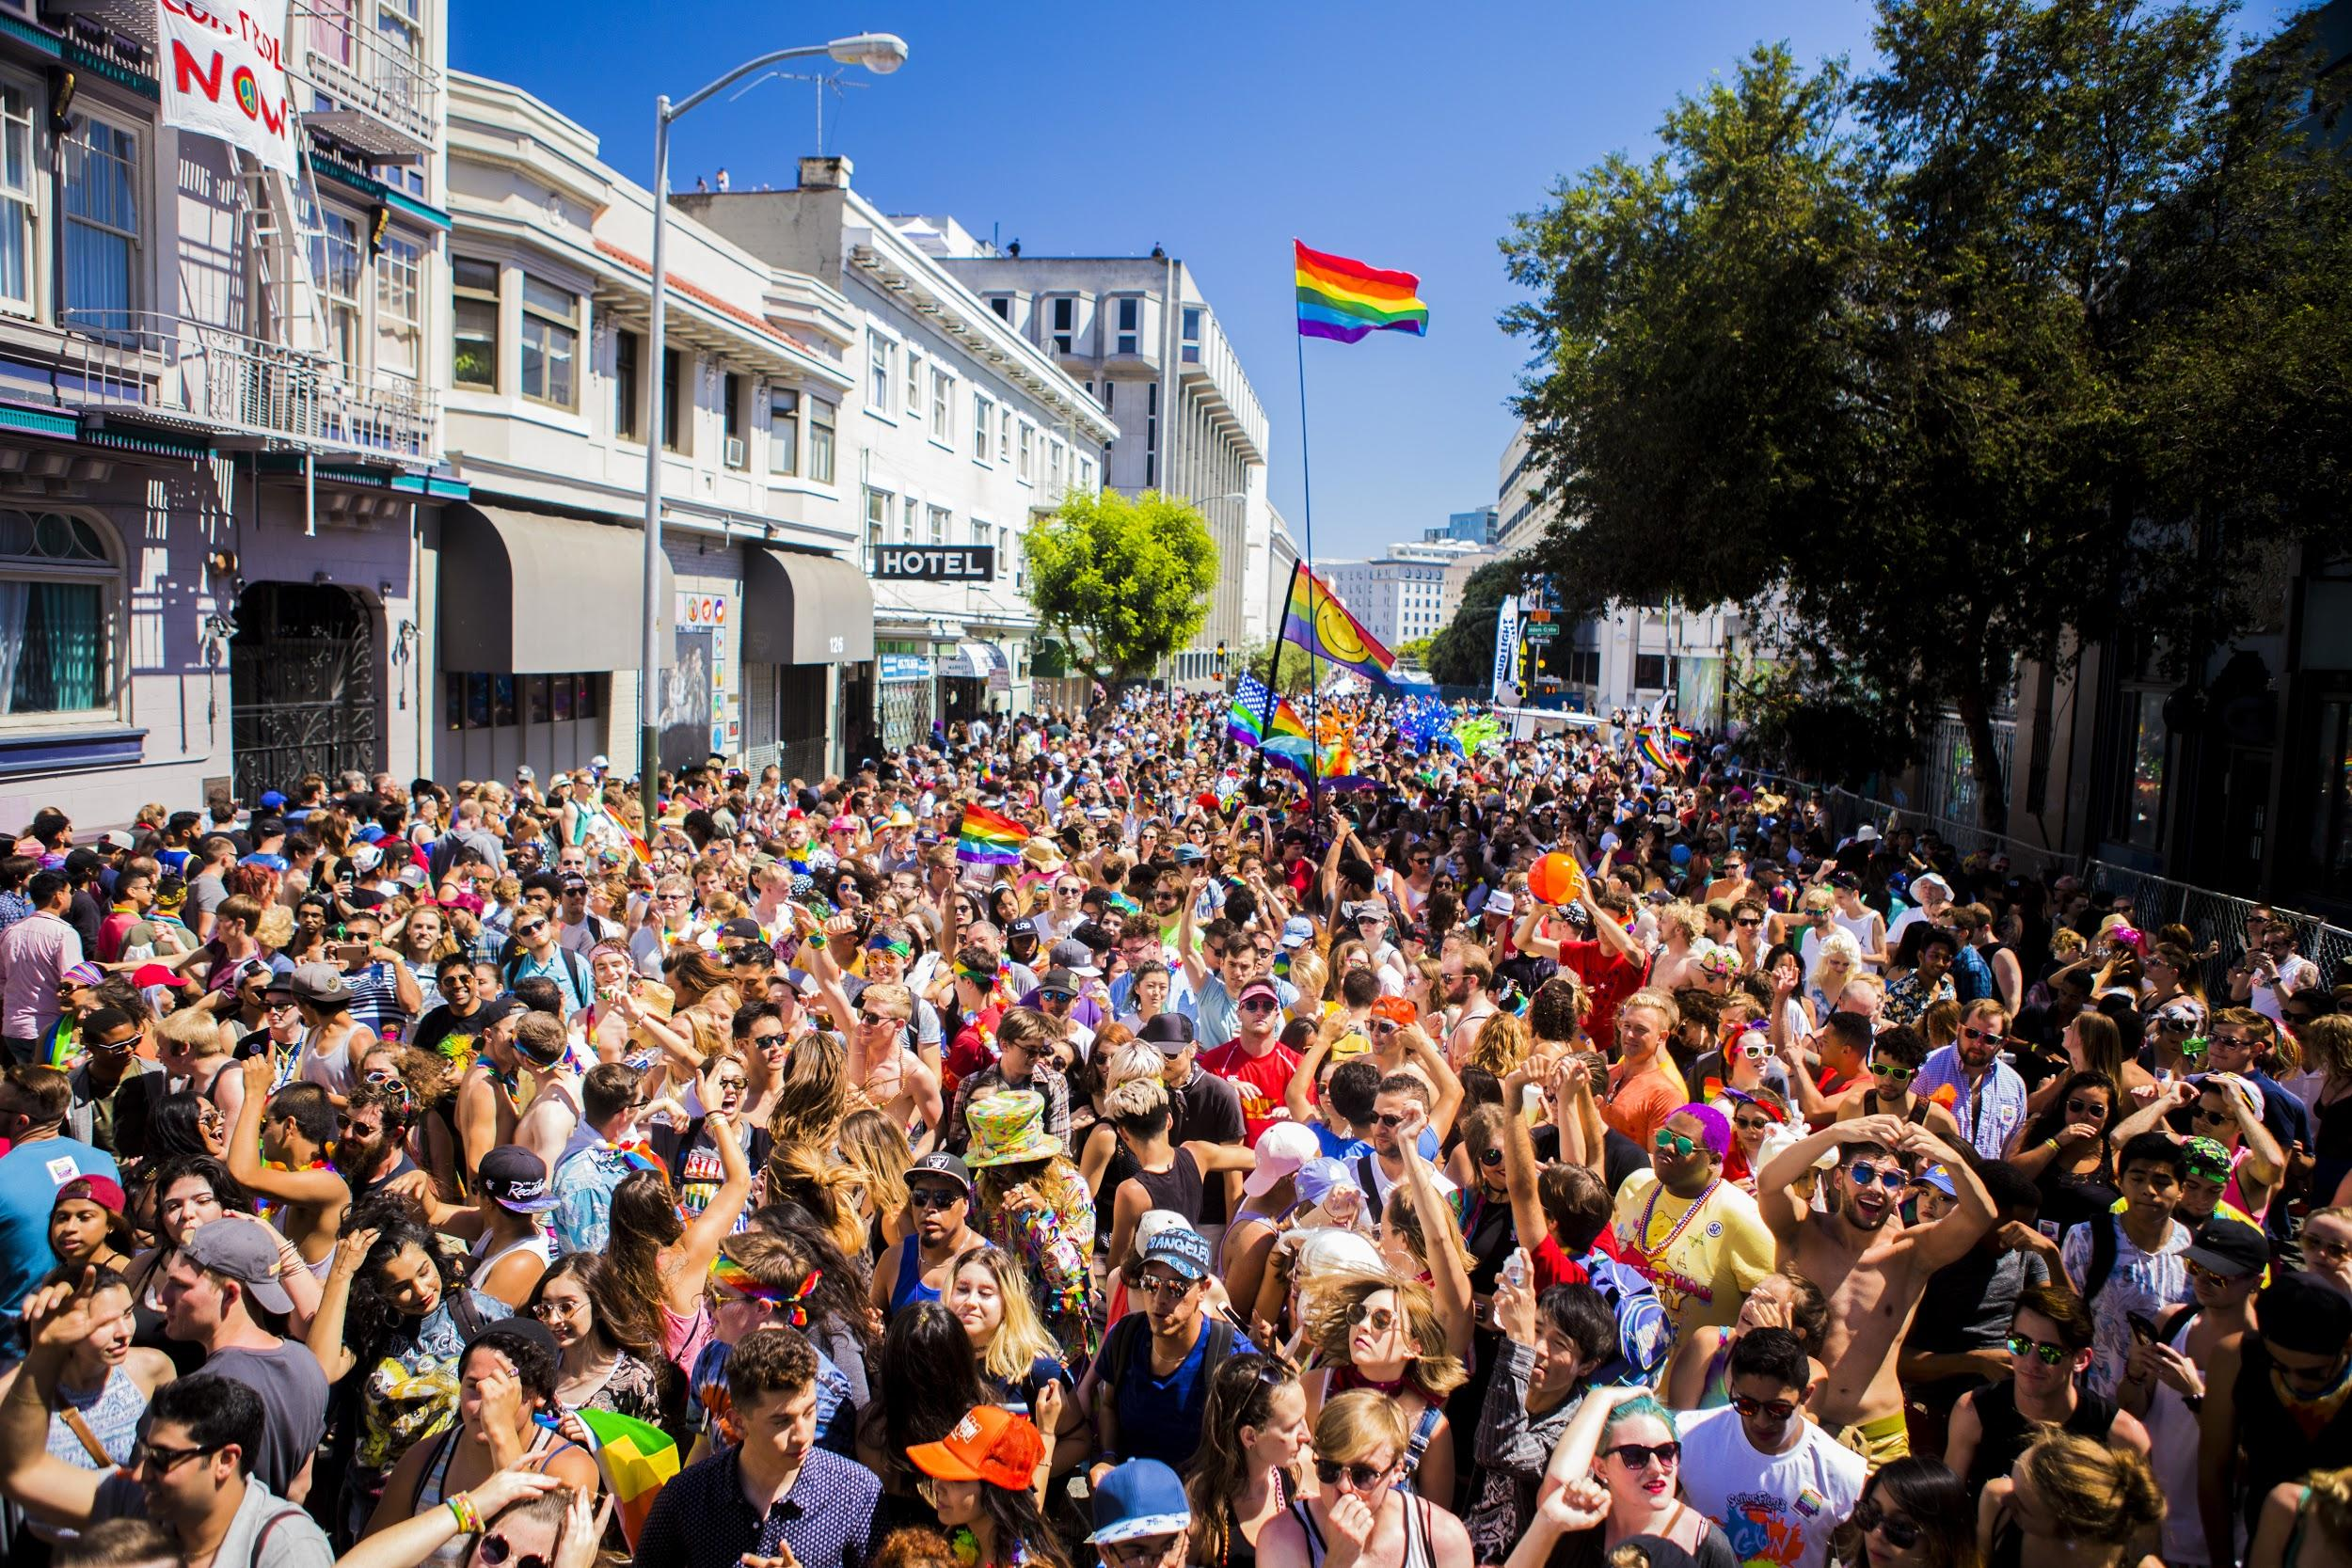 I had the great honor of being invited out to capture life from one of the stages at SF Pride 2016. (CHARLES MIIN)